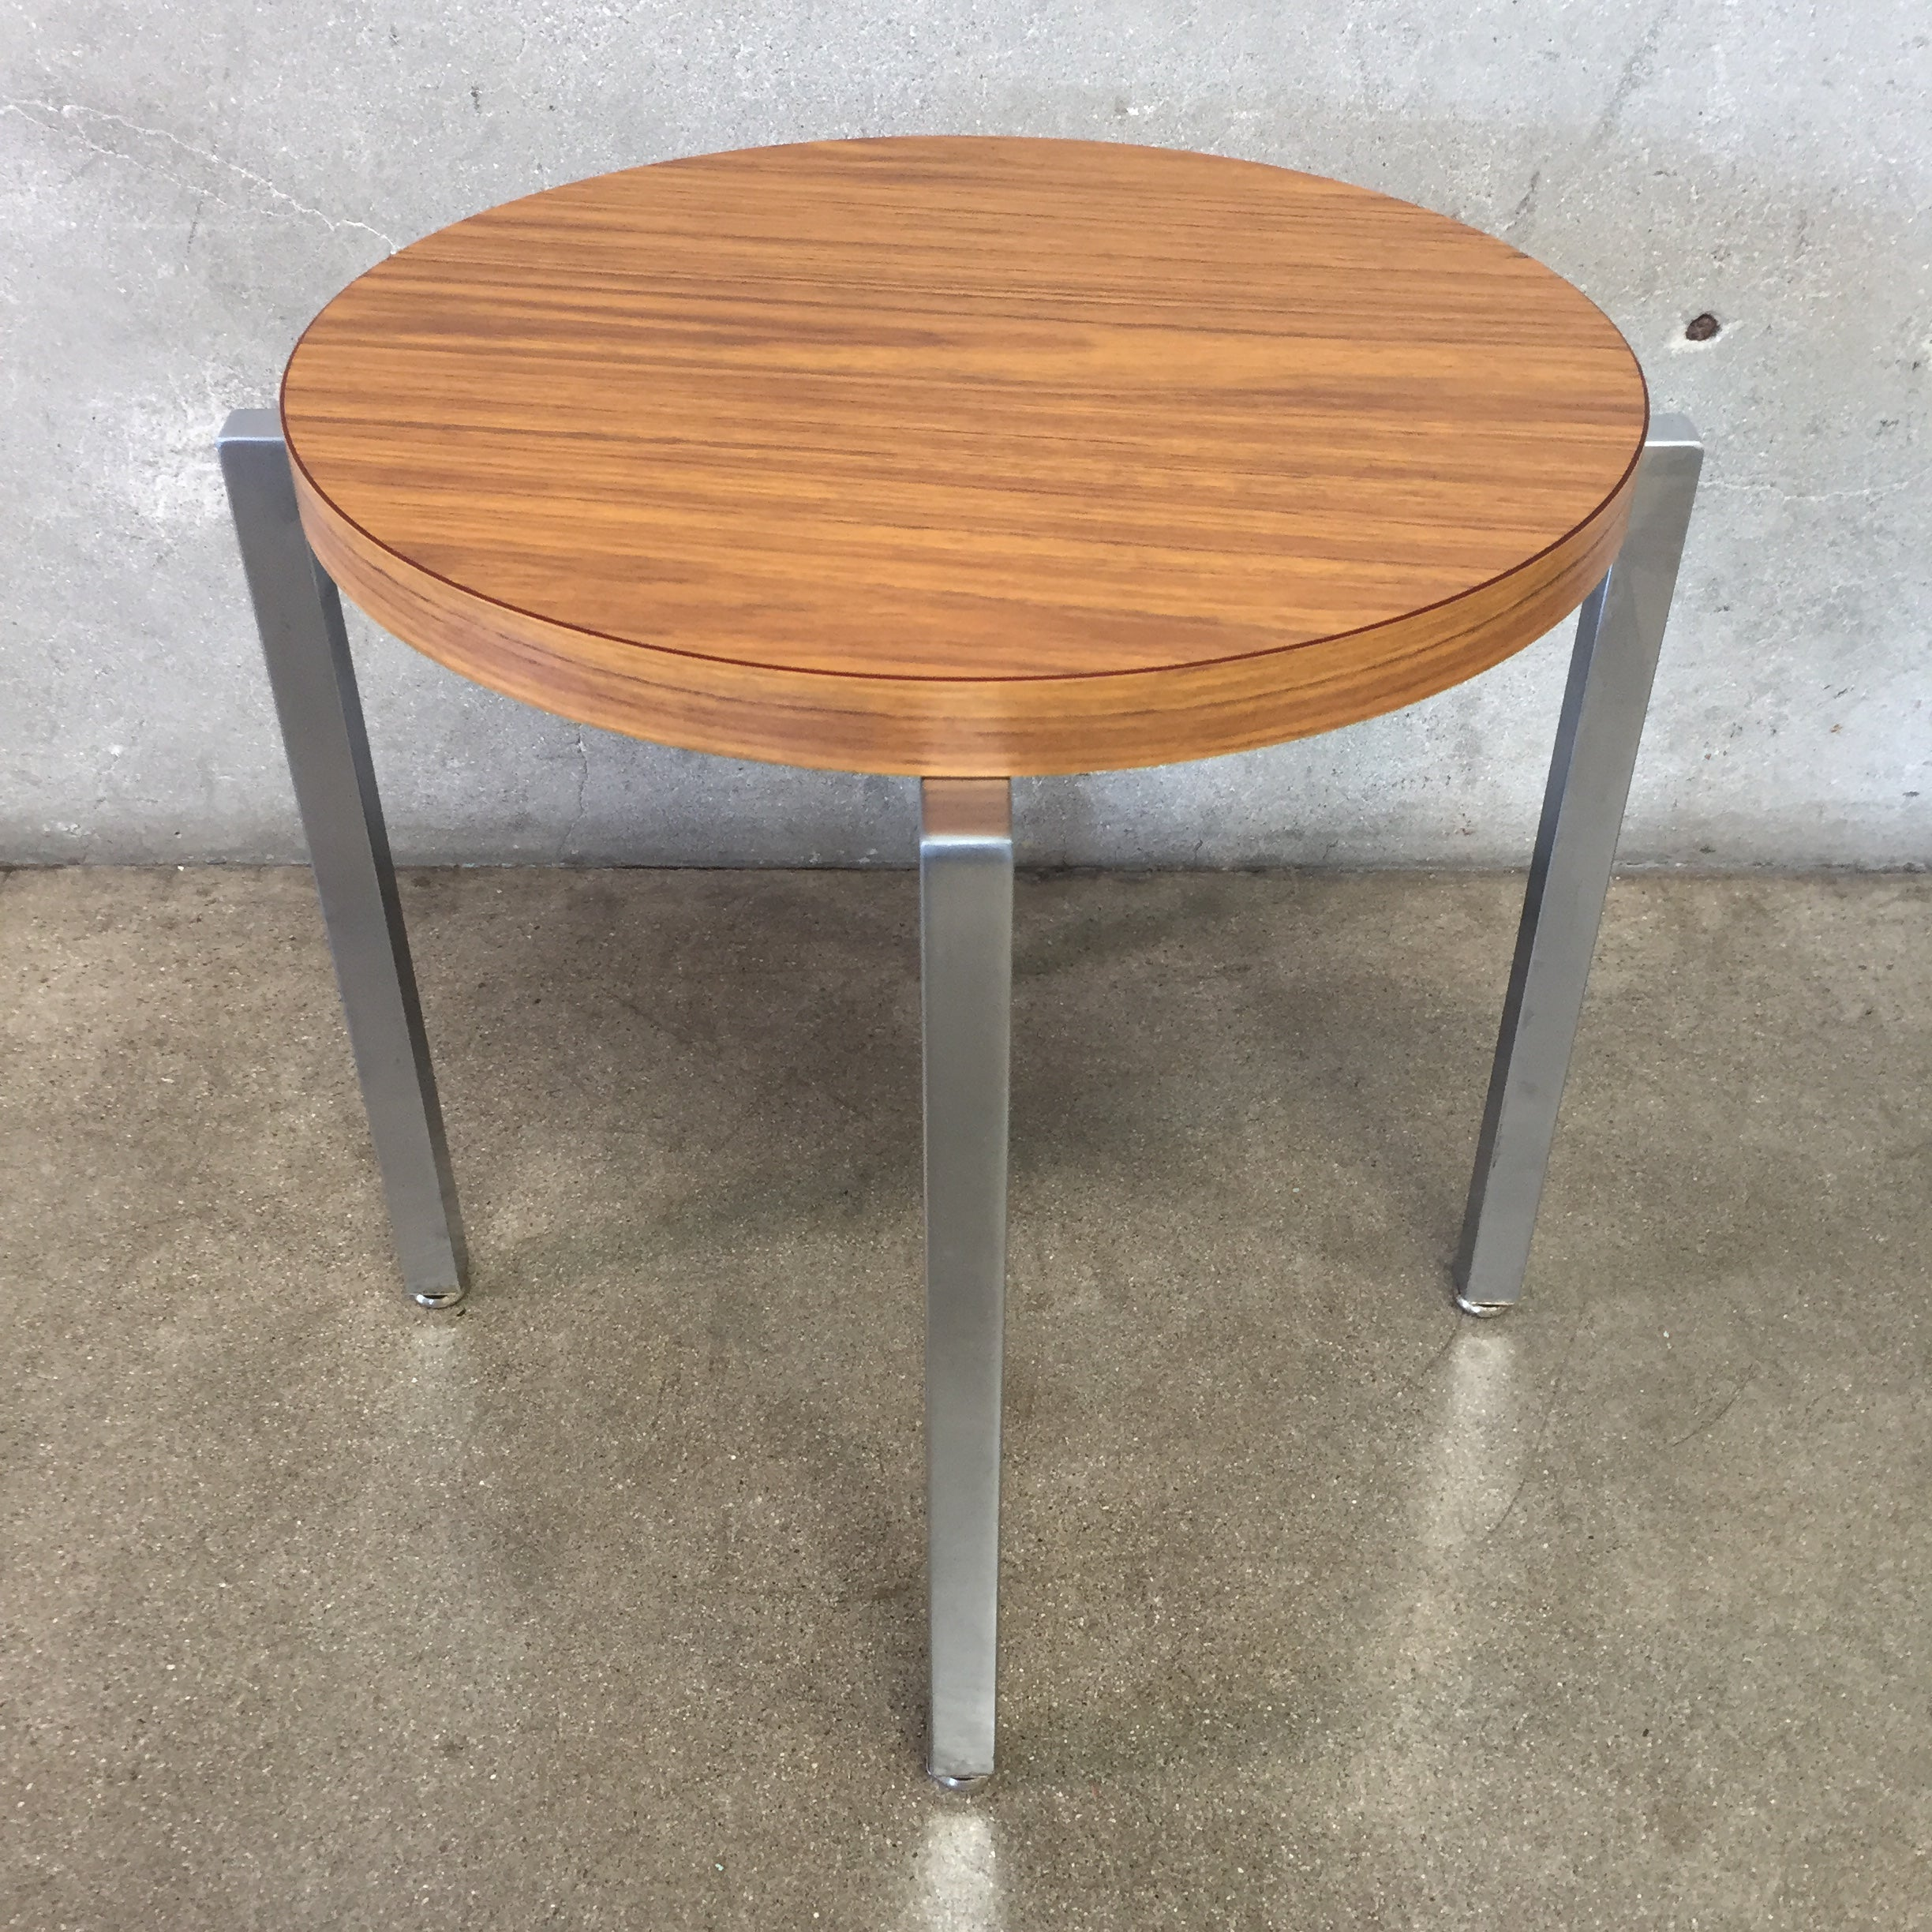 vintage mid century modern side table